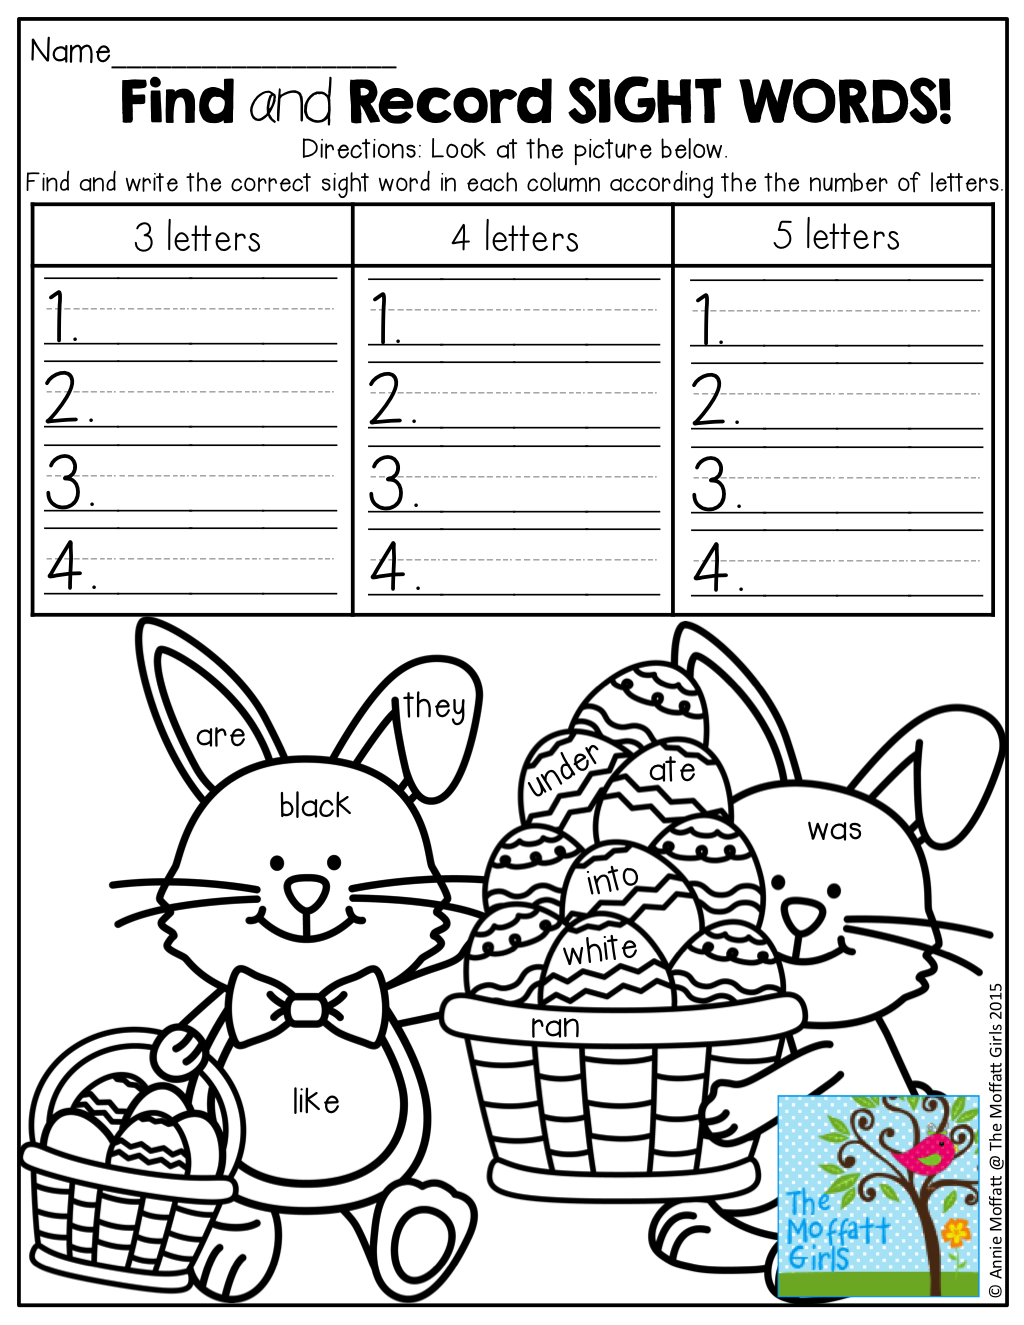 Find And Record A Hidden Sight Word Record The Sight Word